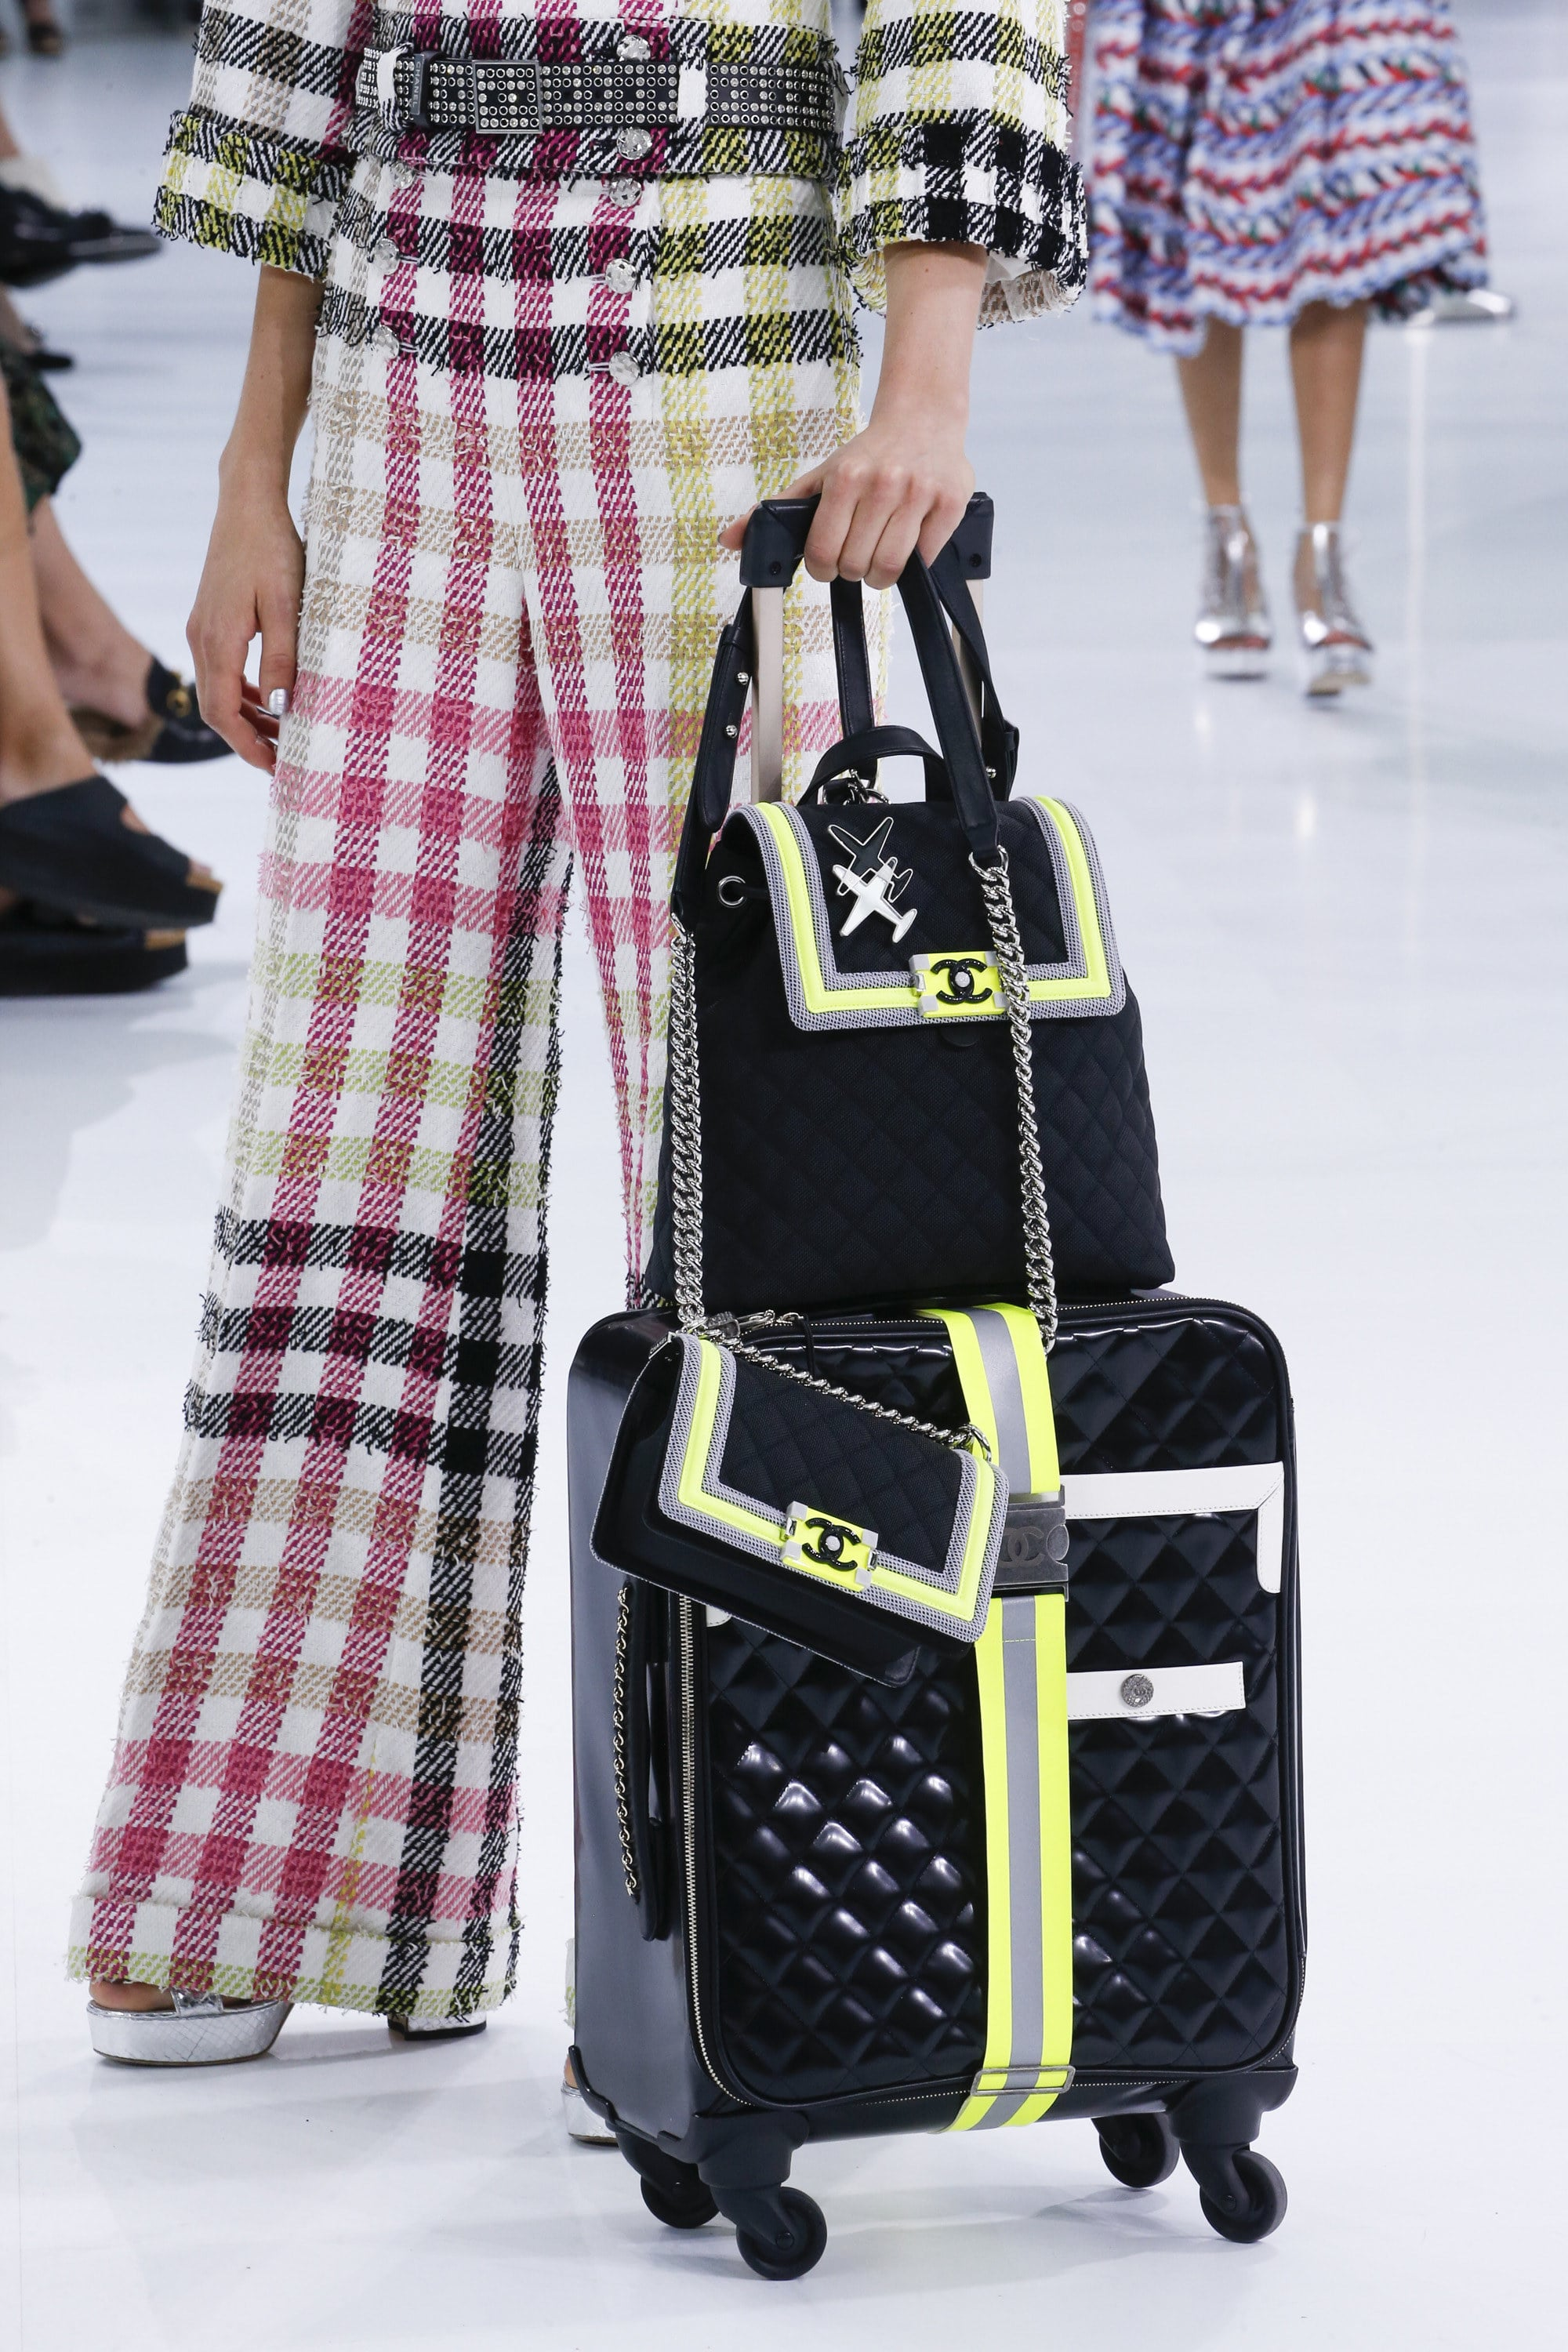 Chanel Spring Summer 2016 Runway Bag Collection Featuring